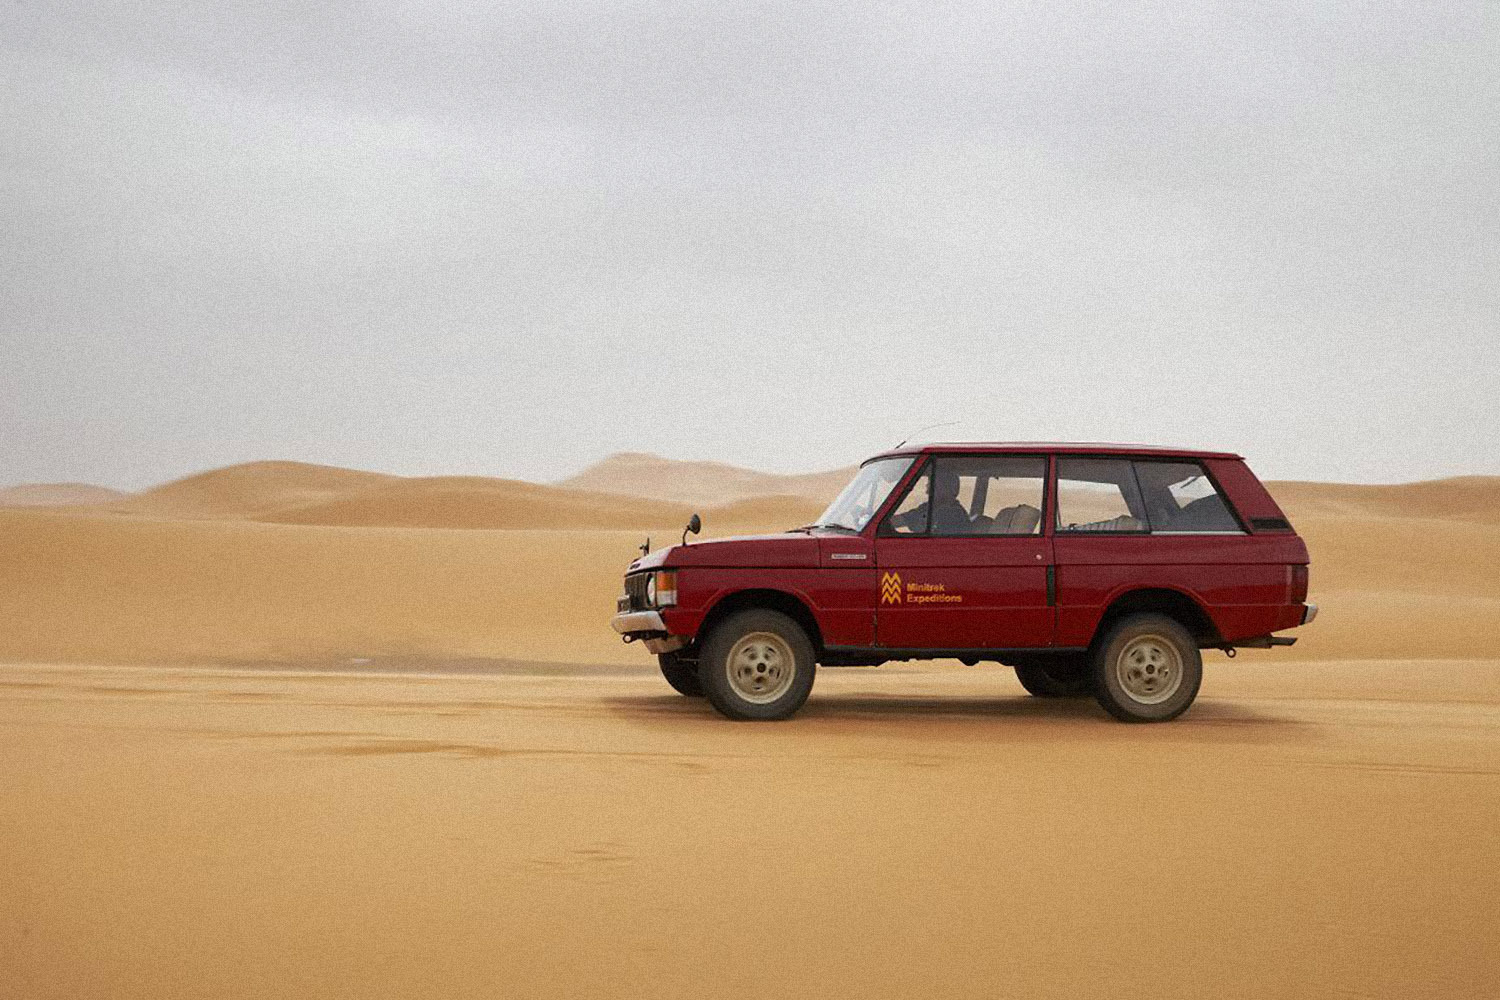 Looking Back At 50 Years Of Range Rover With The World's Most Obsessive Collection